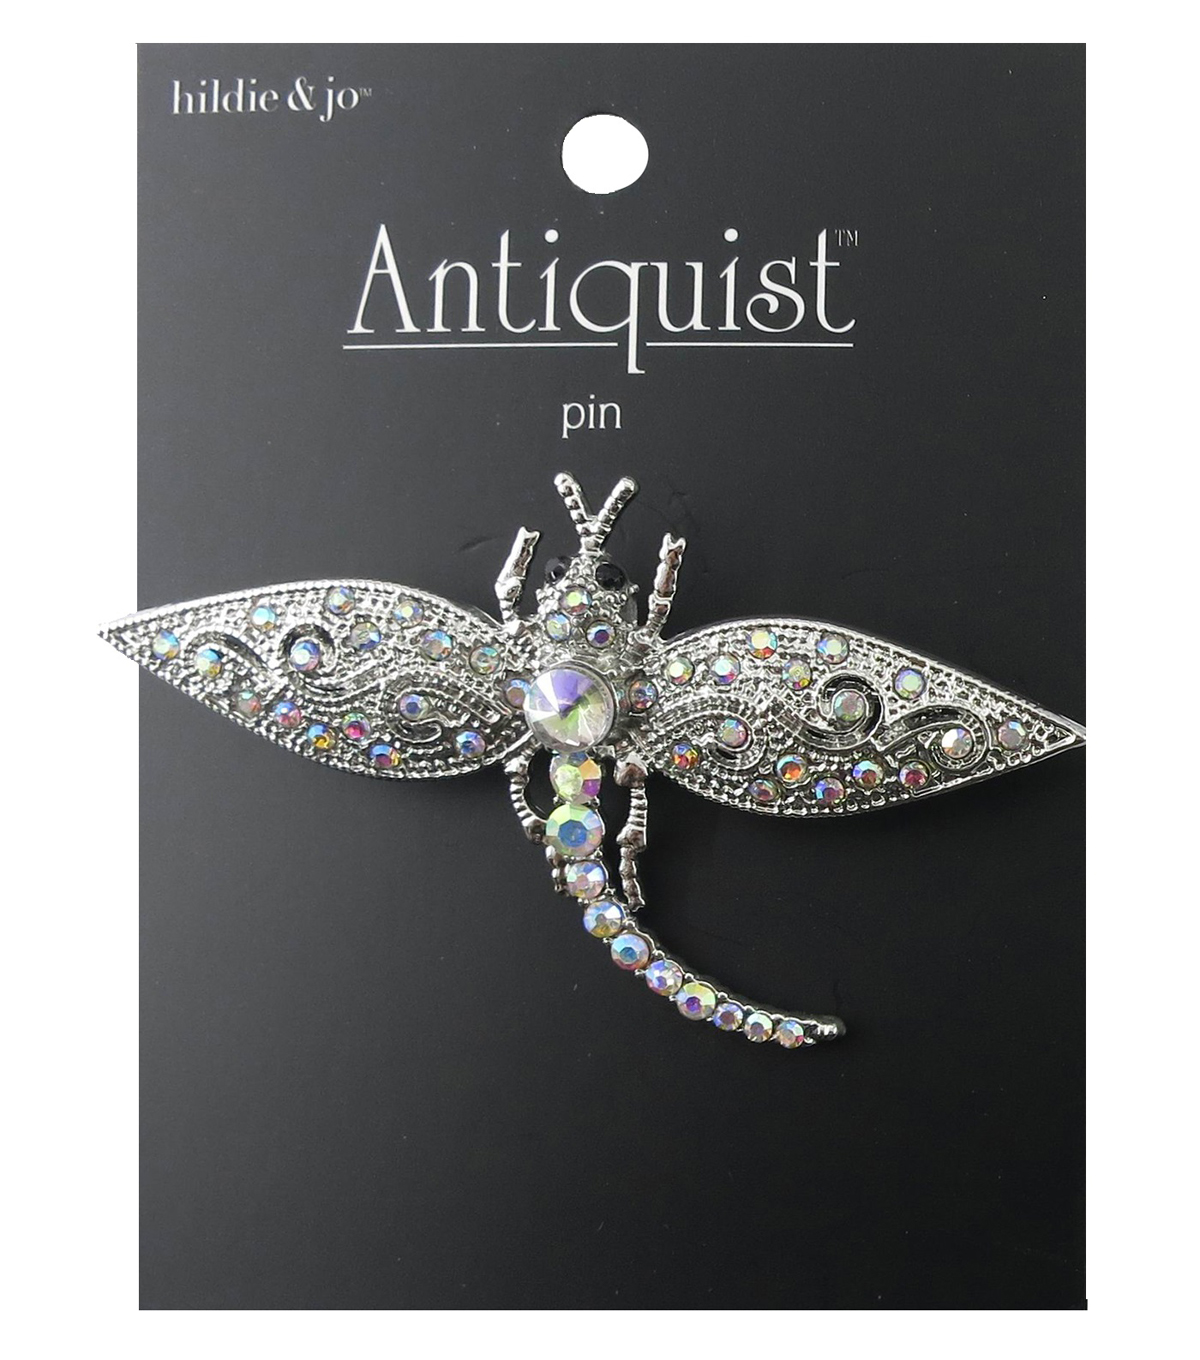 hildie & jo™ Antiquist Dragonfly Silver Pin-Iridescent Crystals